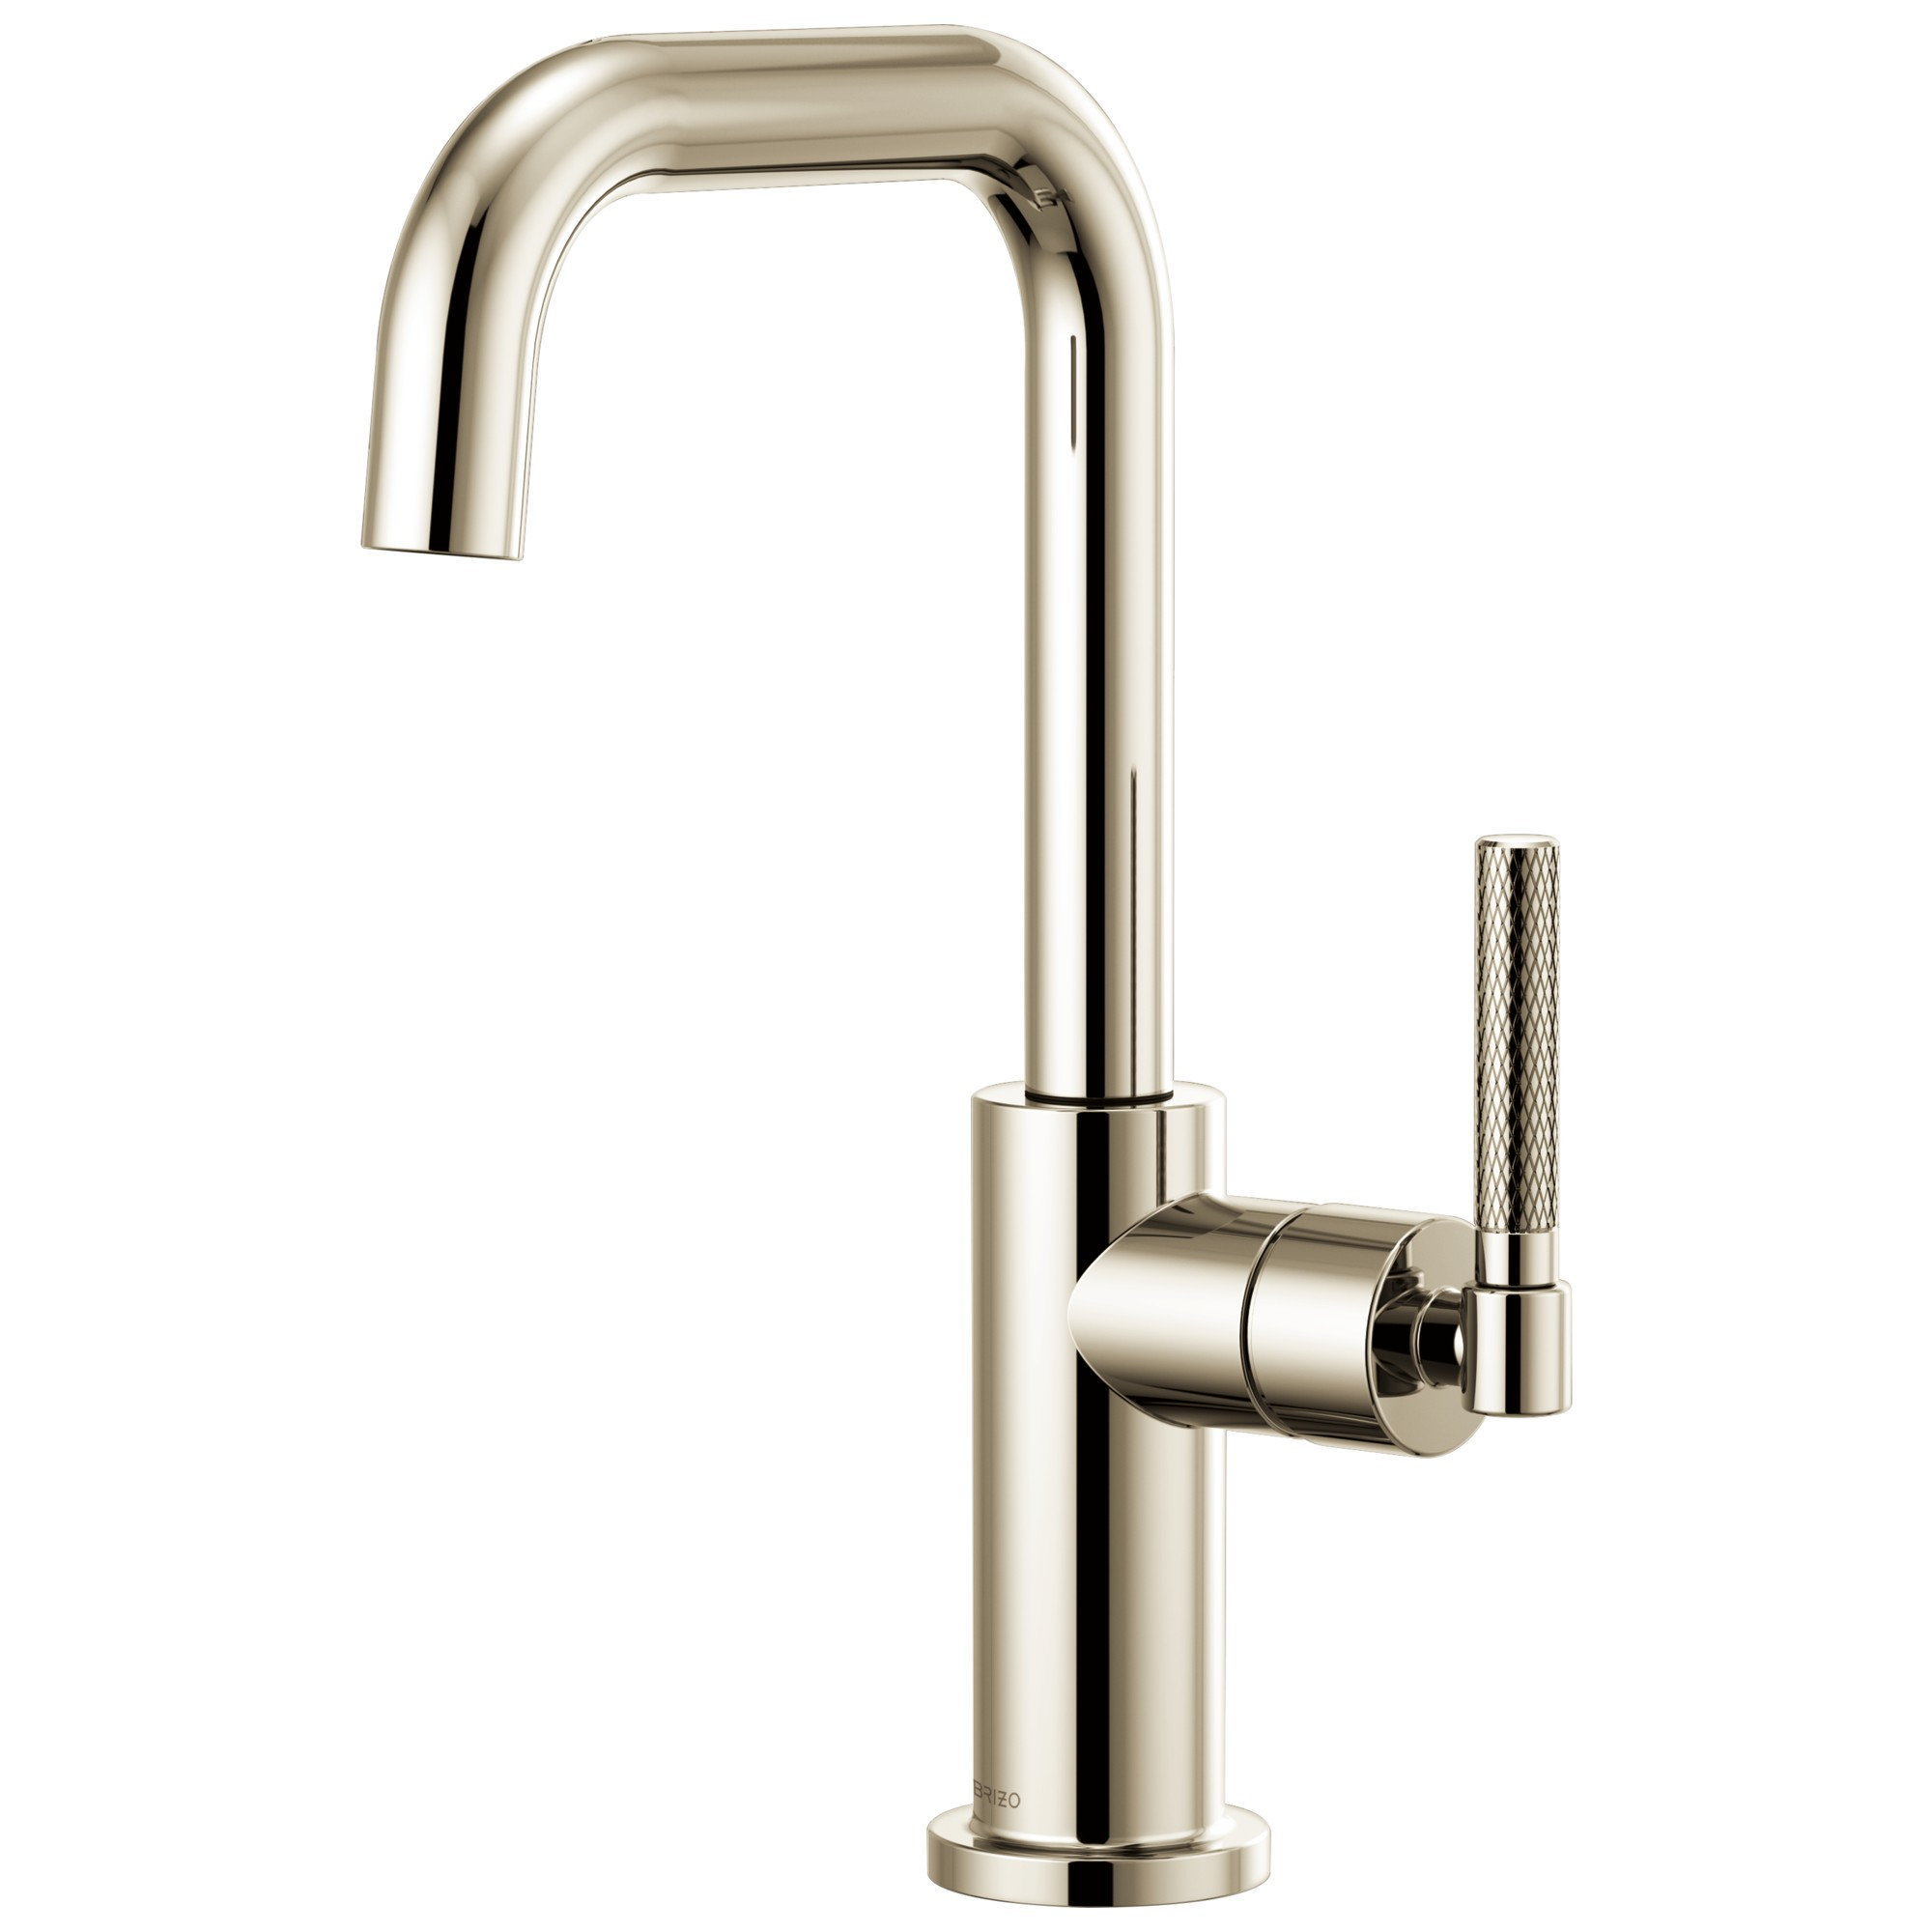 Brizo 61053LF-PN Litze Bar Faucet with Square Spout and Knurled Handle - Polished Nickel